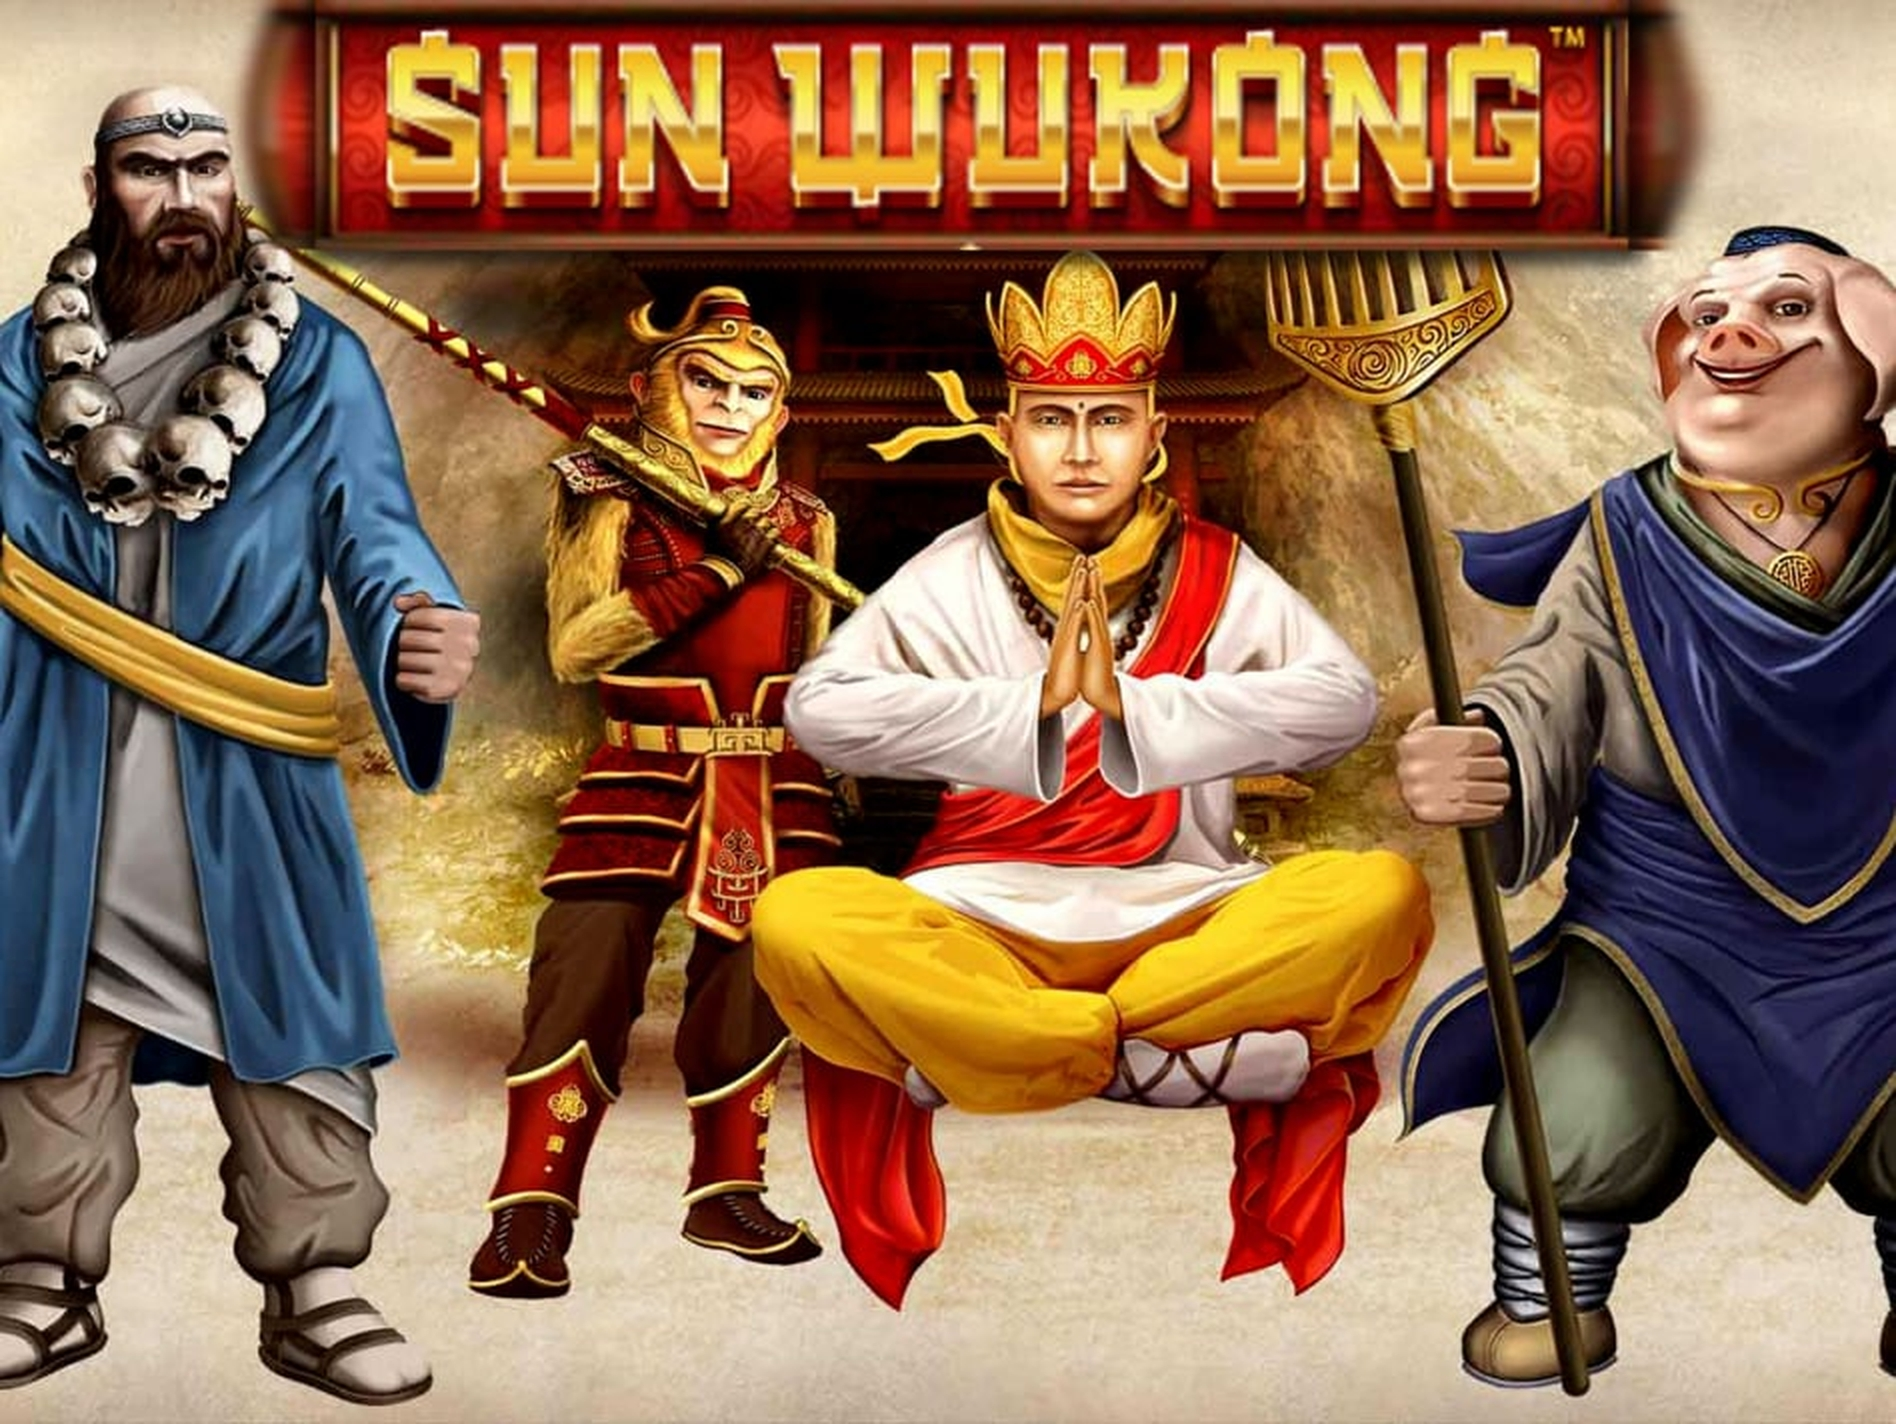 Se Sun Wukong Online Slot Demo Game, Playtech